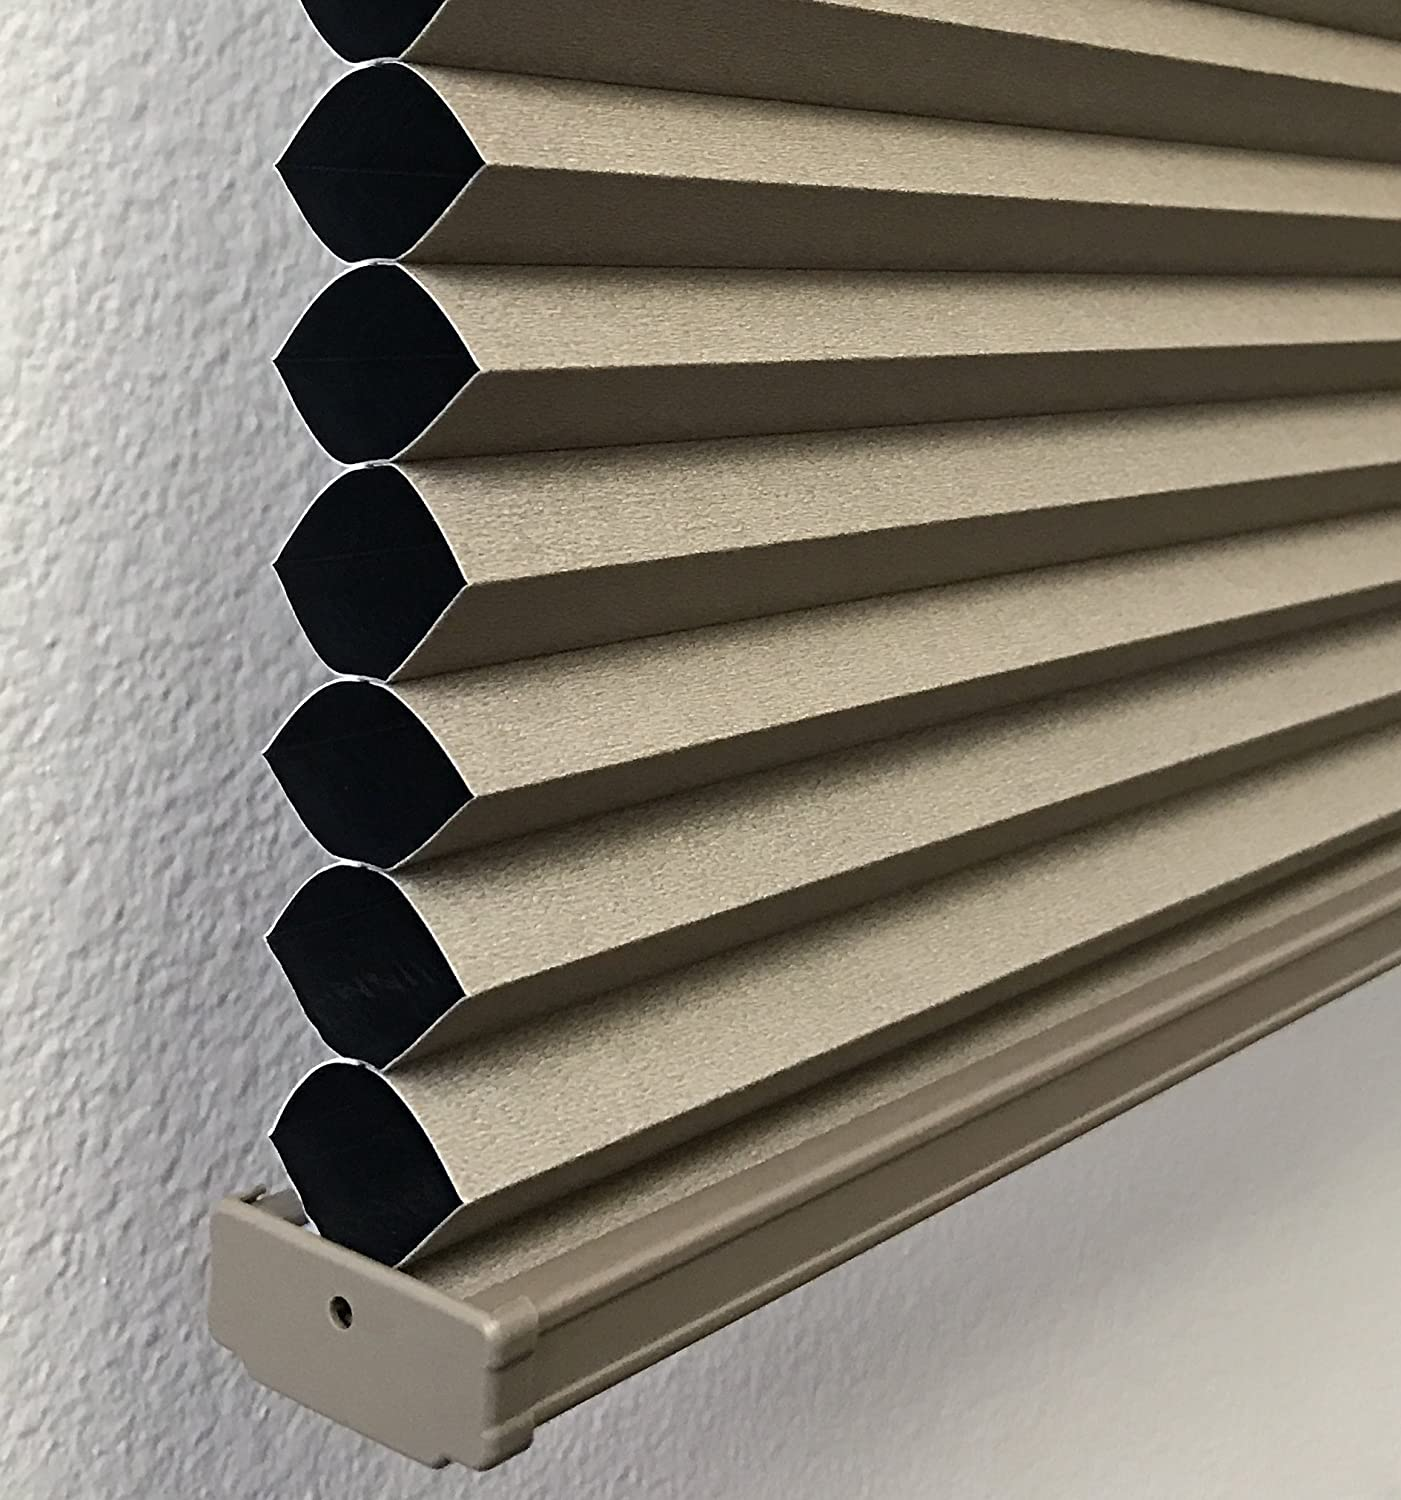 BlindDen Cocoa, TOP DOWN/BOTTOM UP, CORDLESS, Room Darkening Cellular Shades, 24